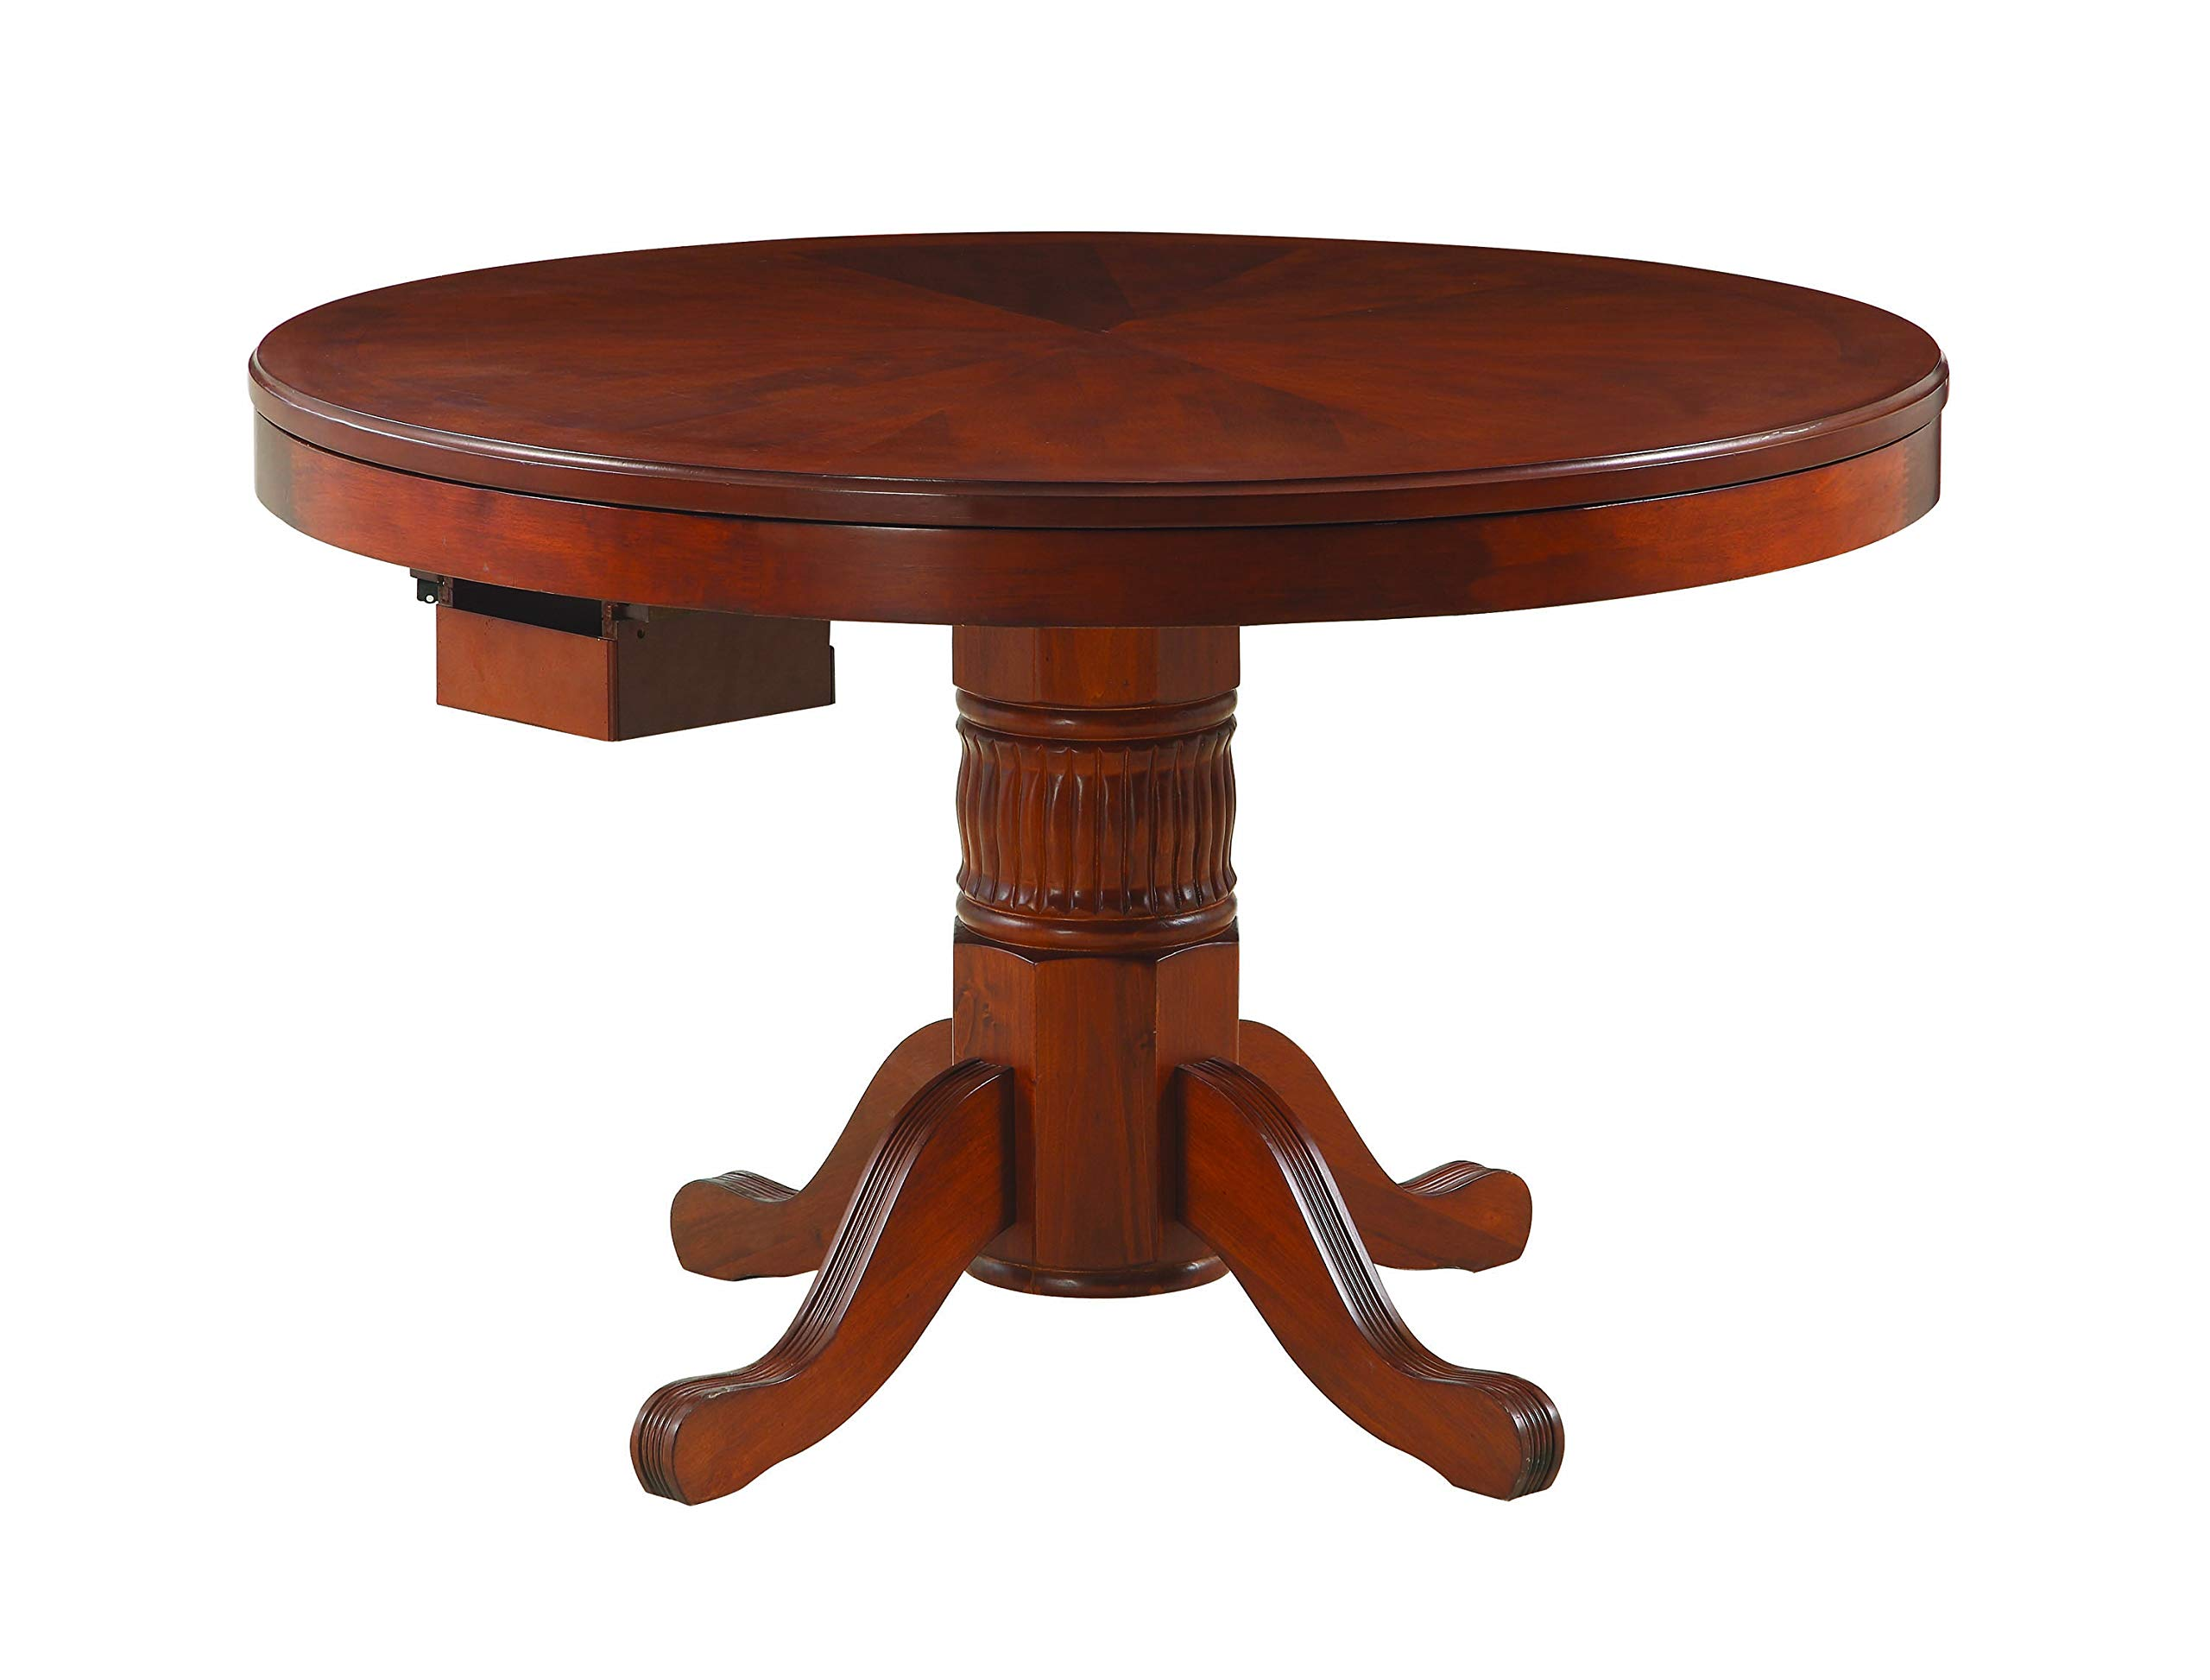 Mitchell 3-in-1 Game Table Merlot by Coaster Home Furnishings